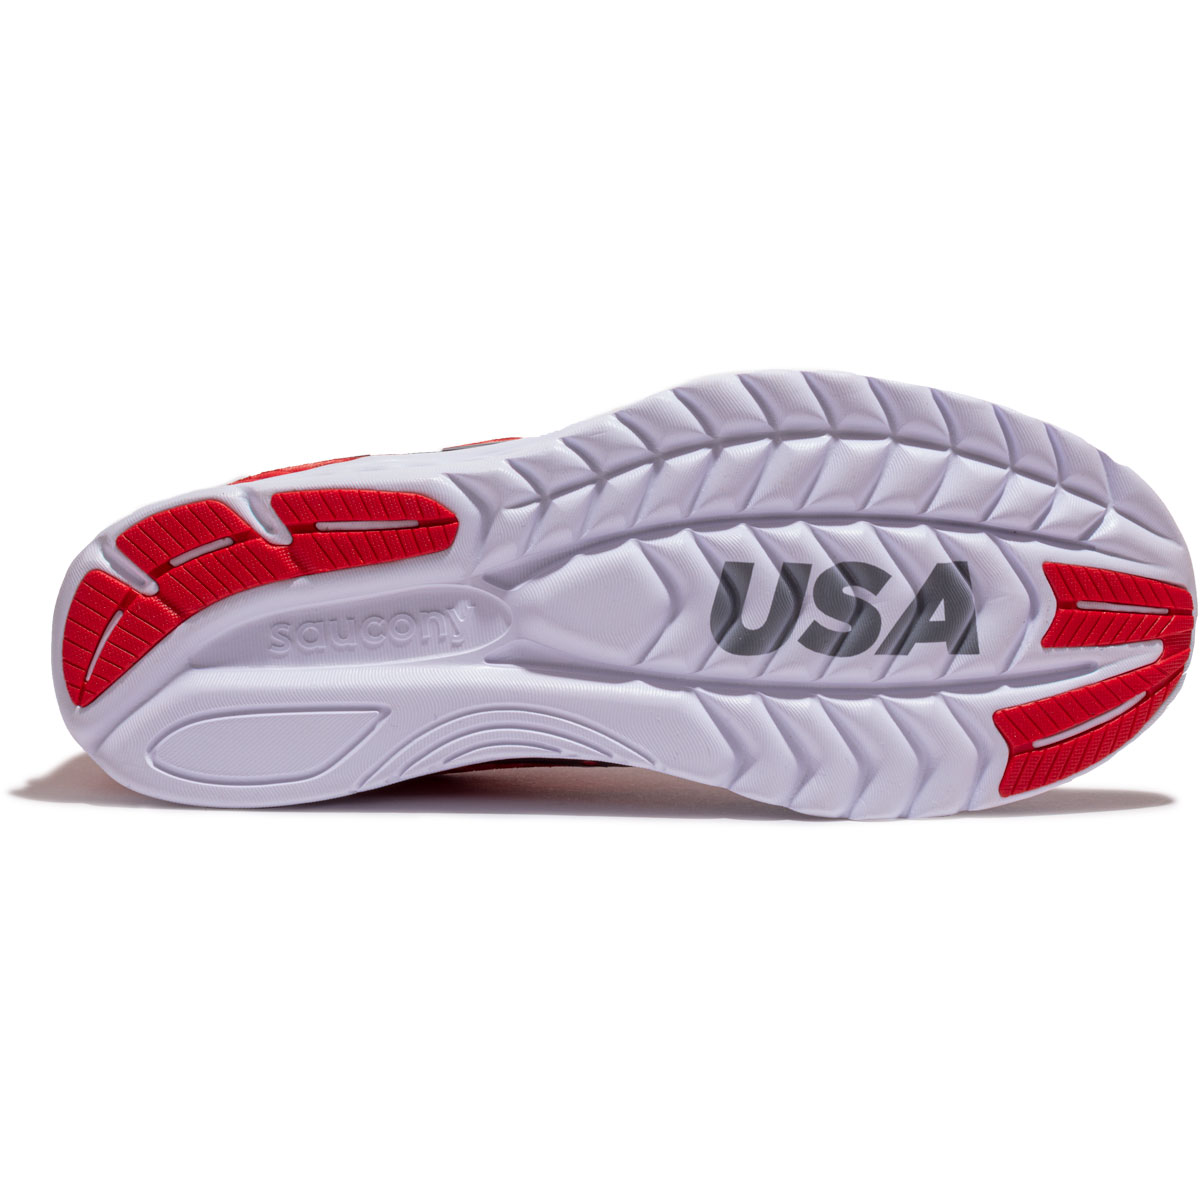 Women's Saucony Kinvara 11 Running Shoe - Color: Red/White/Blue - Size: 5 - Width: Regular, Red/White/Blue, large, image 3